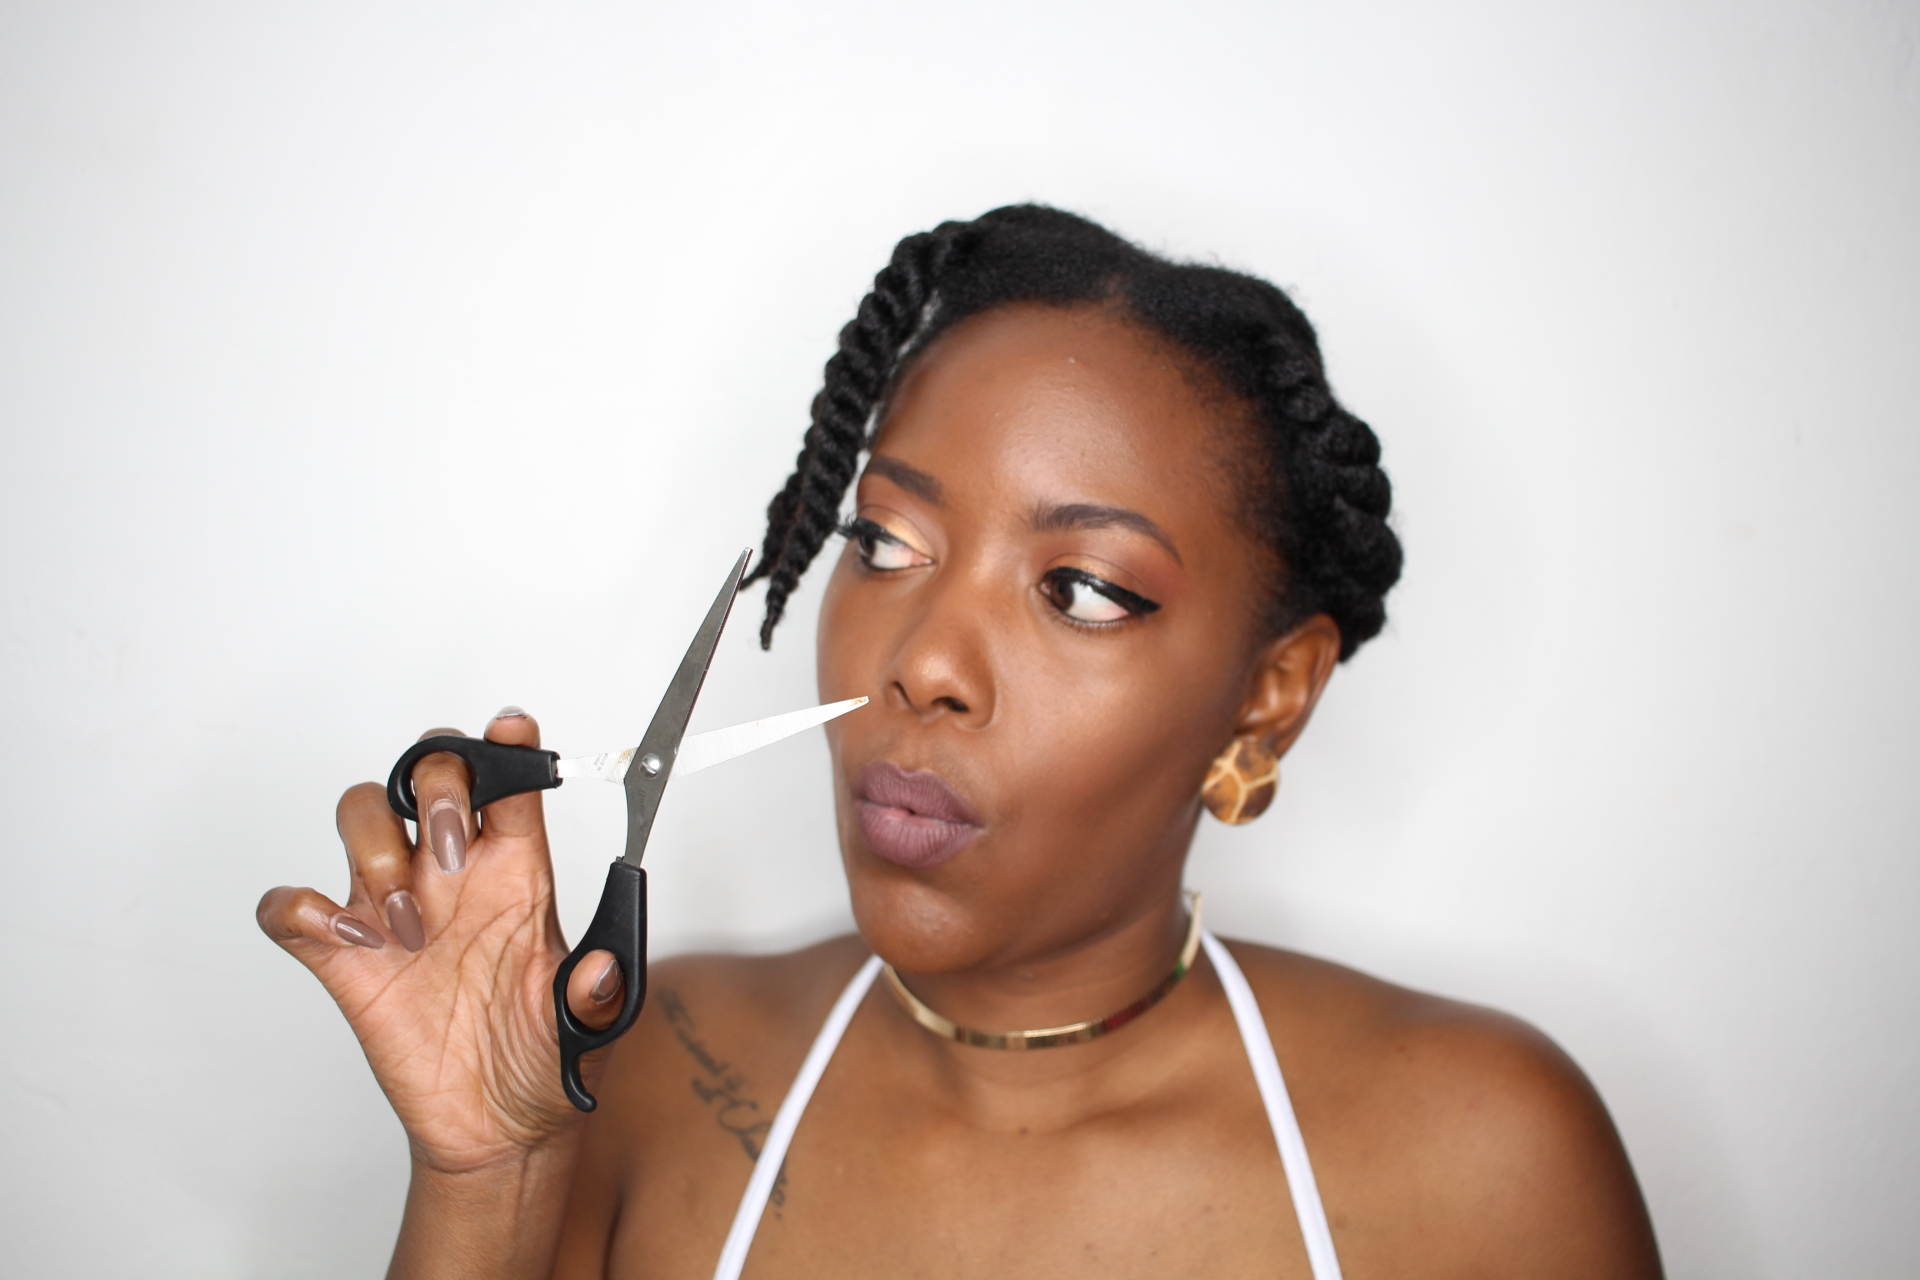 HOW TO TRIM TYPE 4 NATURAL HAIR